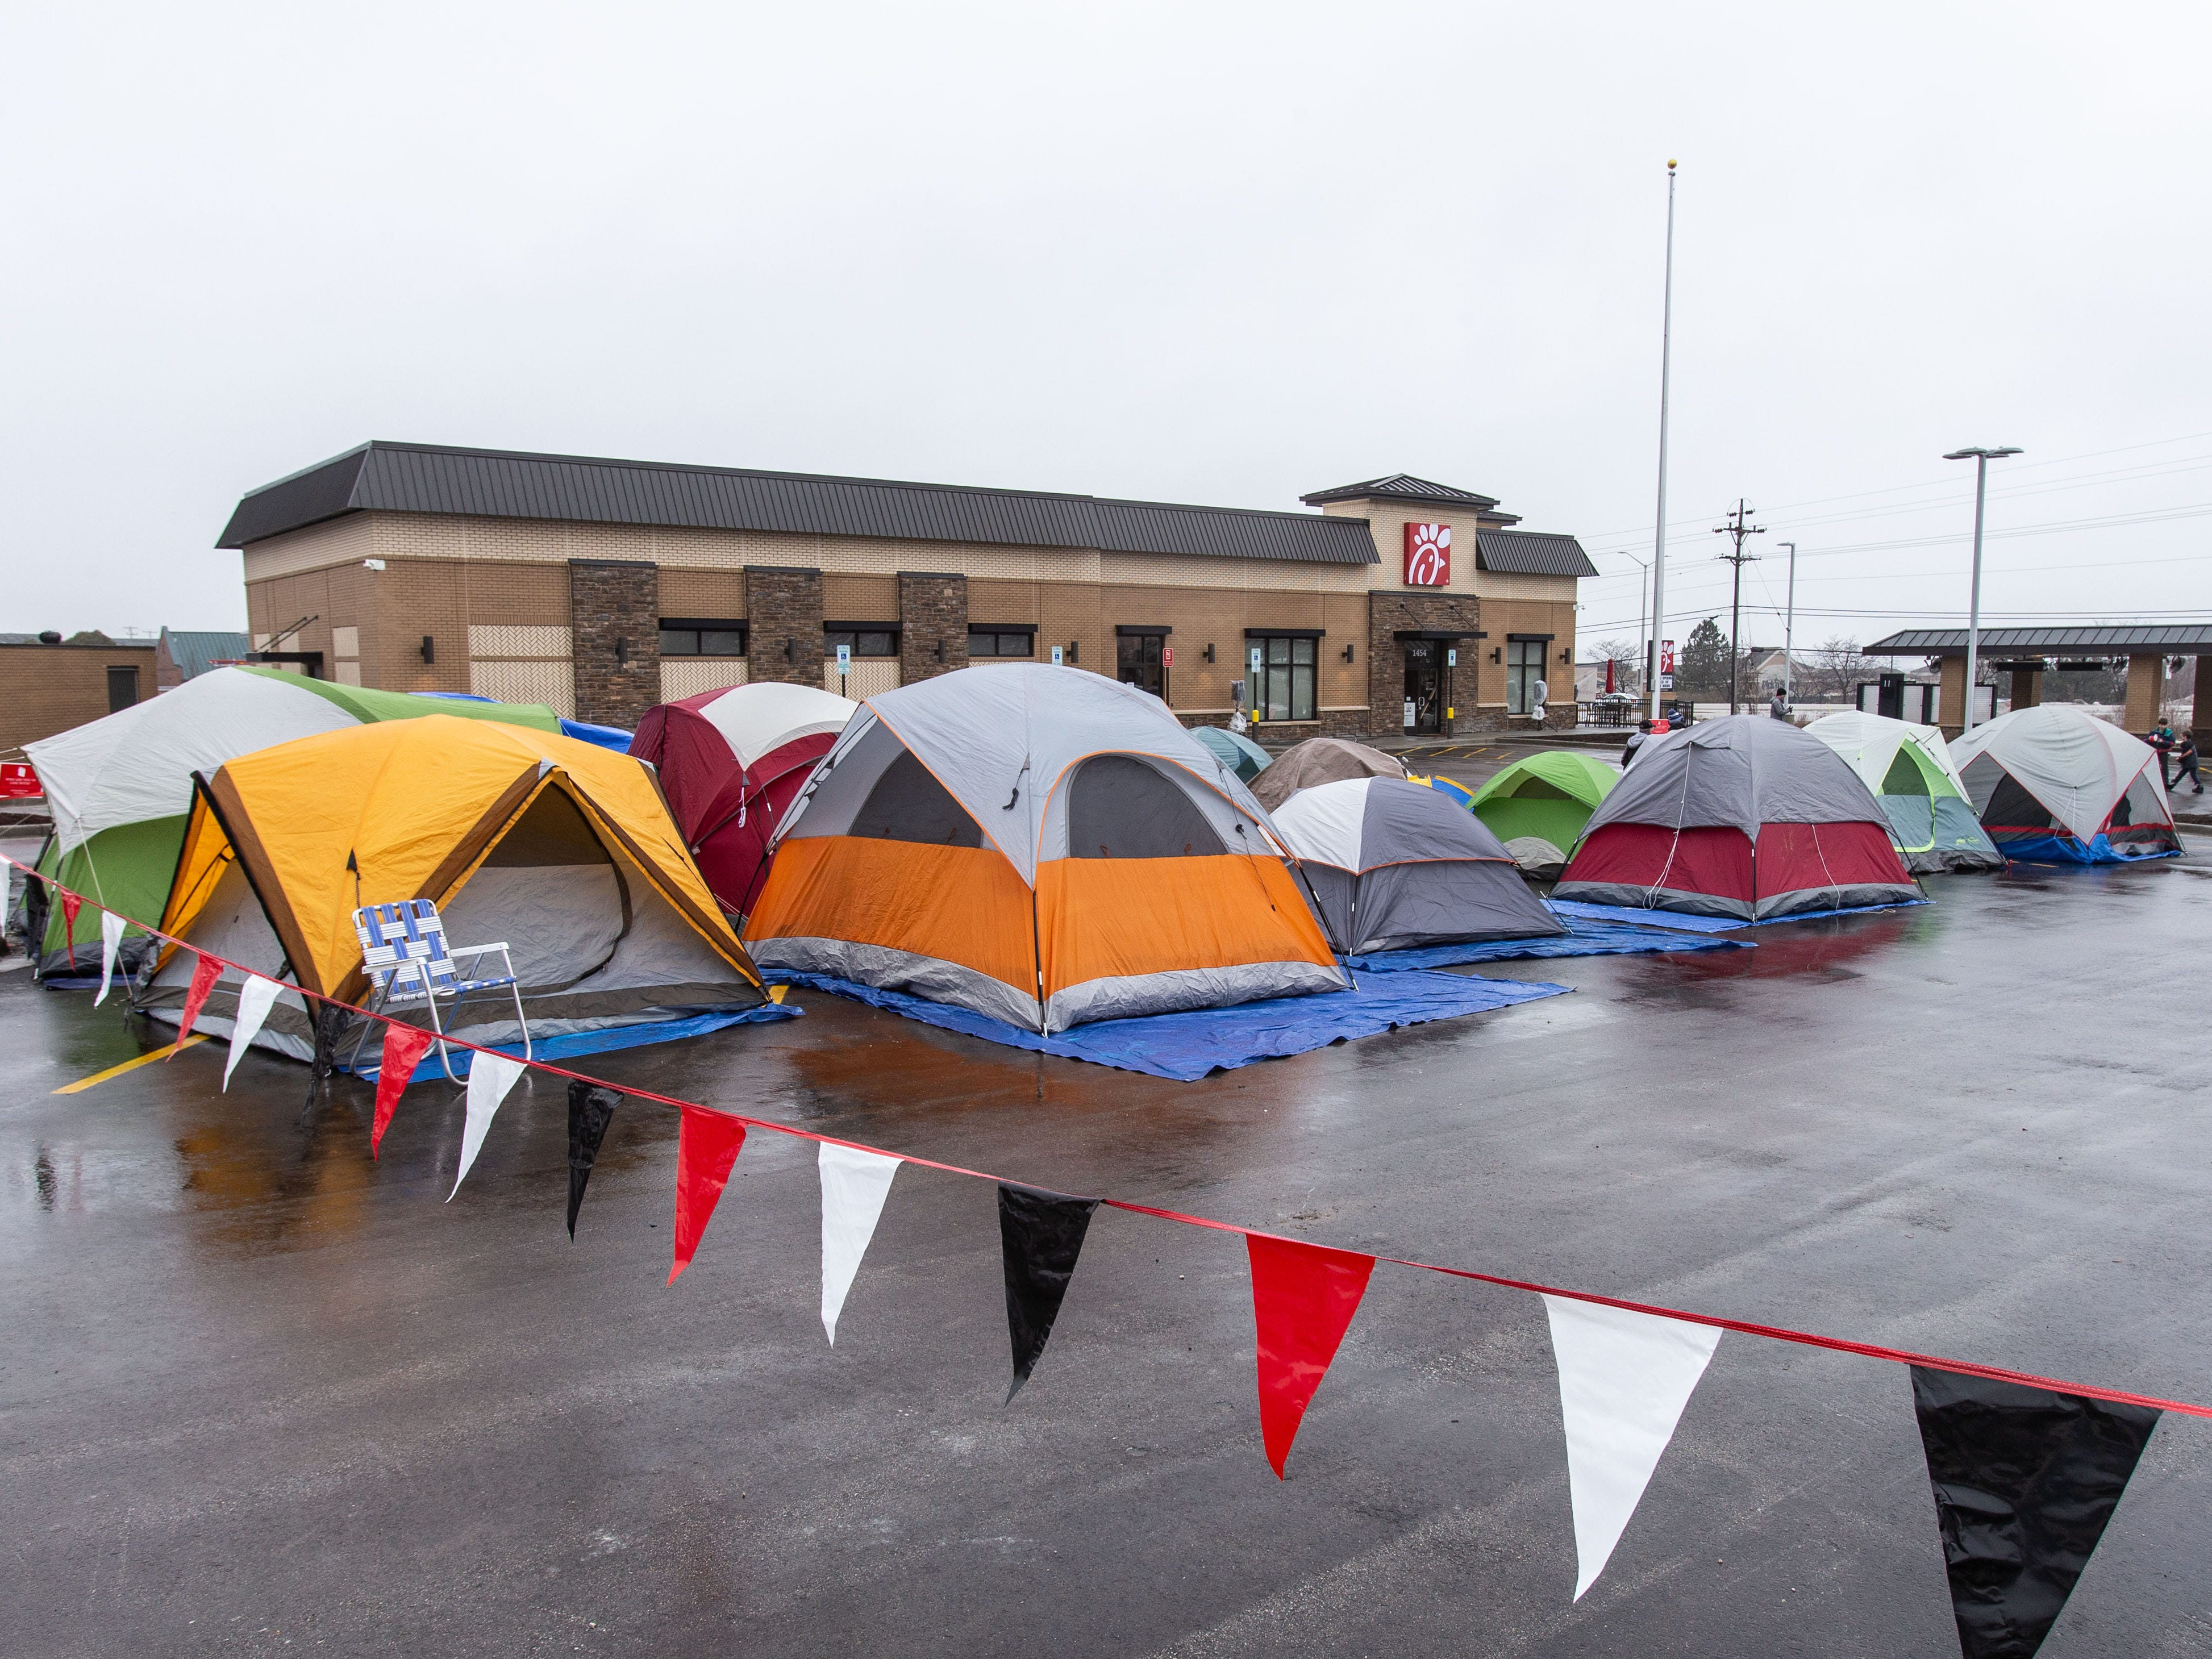 Campers fill the parking lot of Pewaukee's new Chick-fil-A location at 1454 Capitol Drive on Wednesday, March 13, ahead of Thursday's grand opening. Chick-fil-A is holding The First 100 Camp Out contest which offers a year's worth of free Chick-fil-A to the first 100 participants.